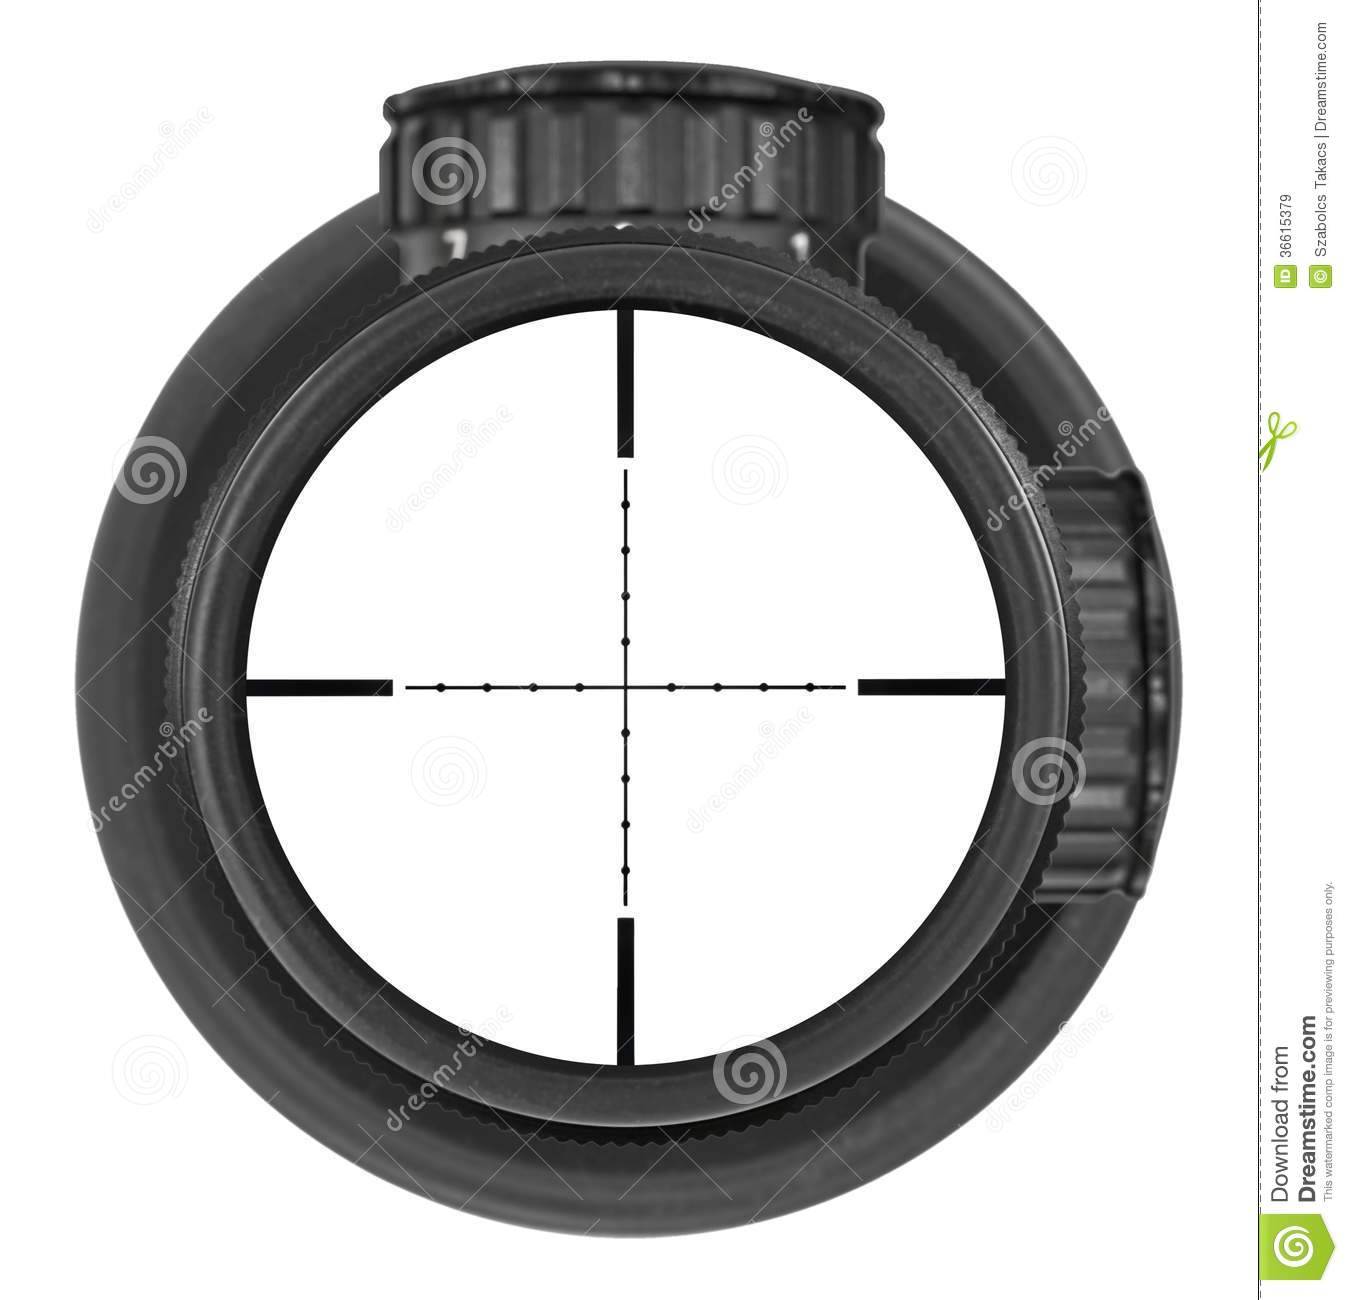 how to look through a rifle scope